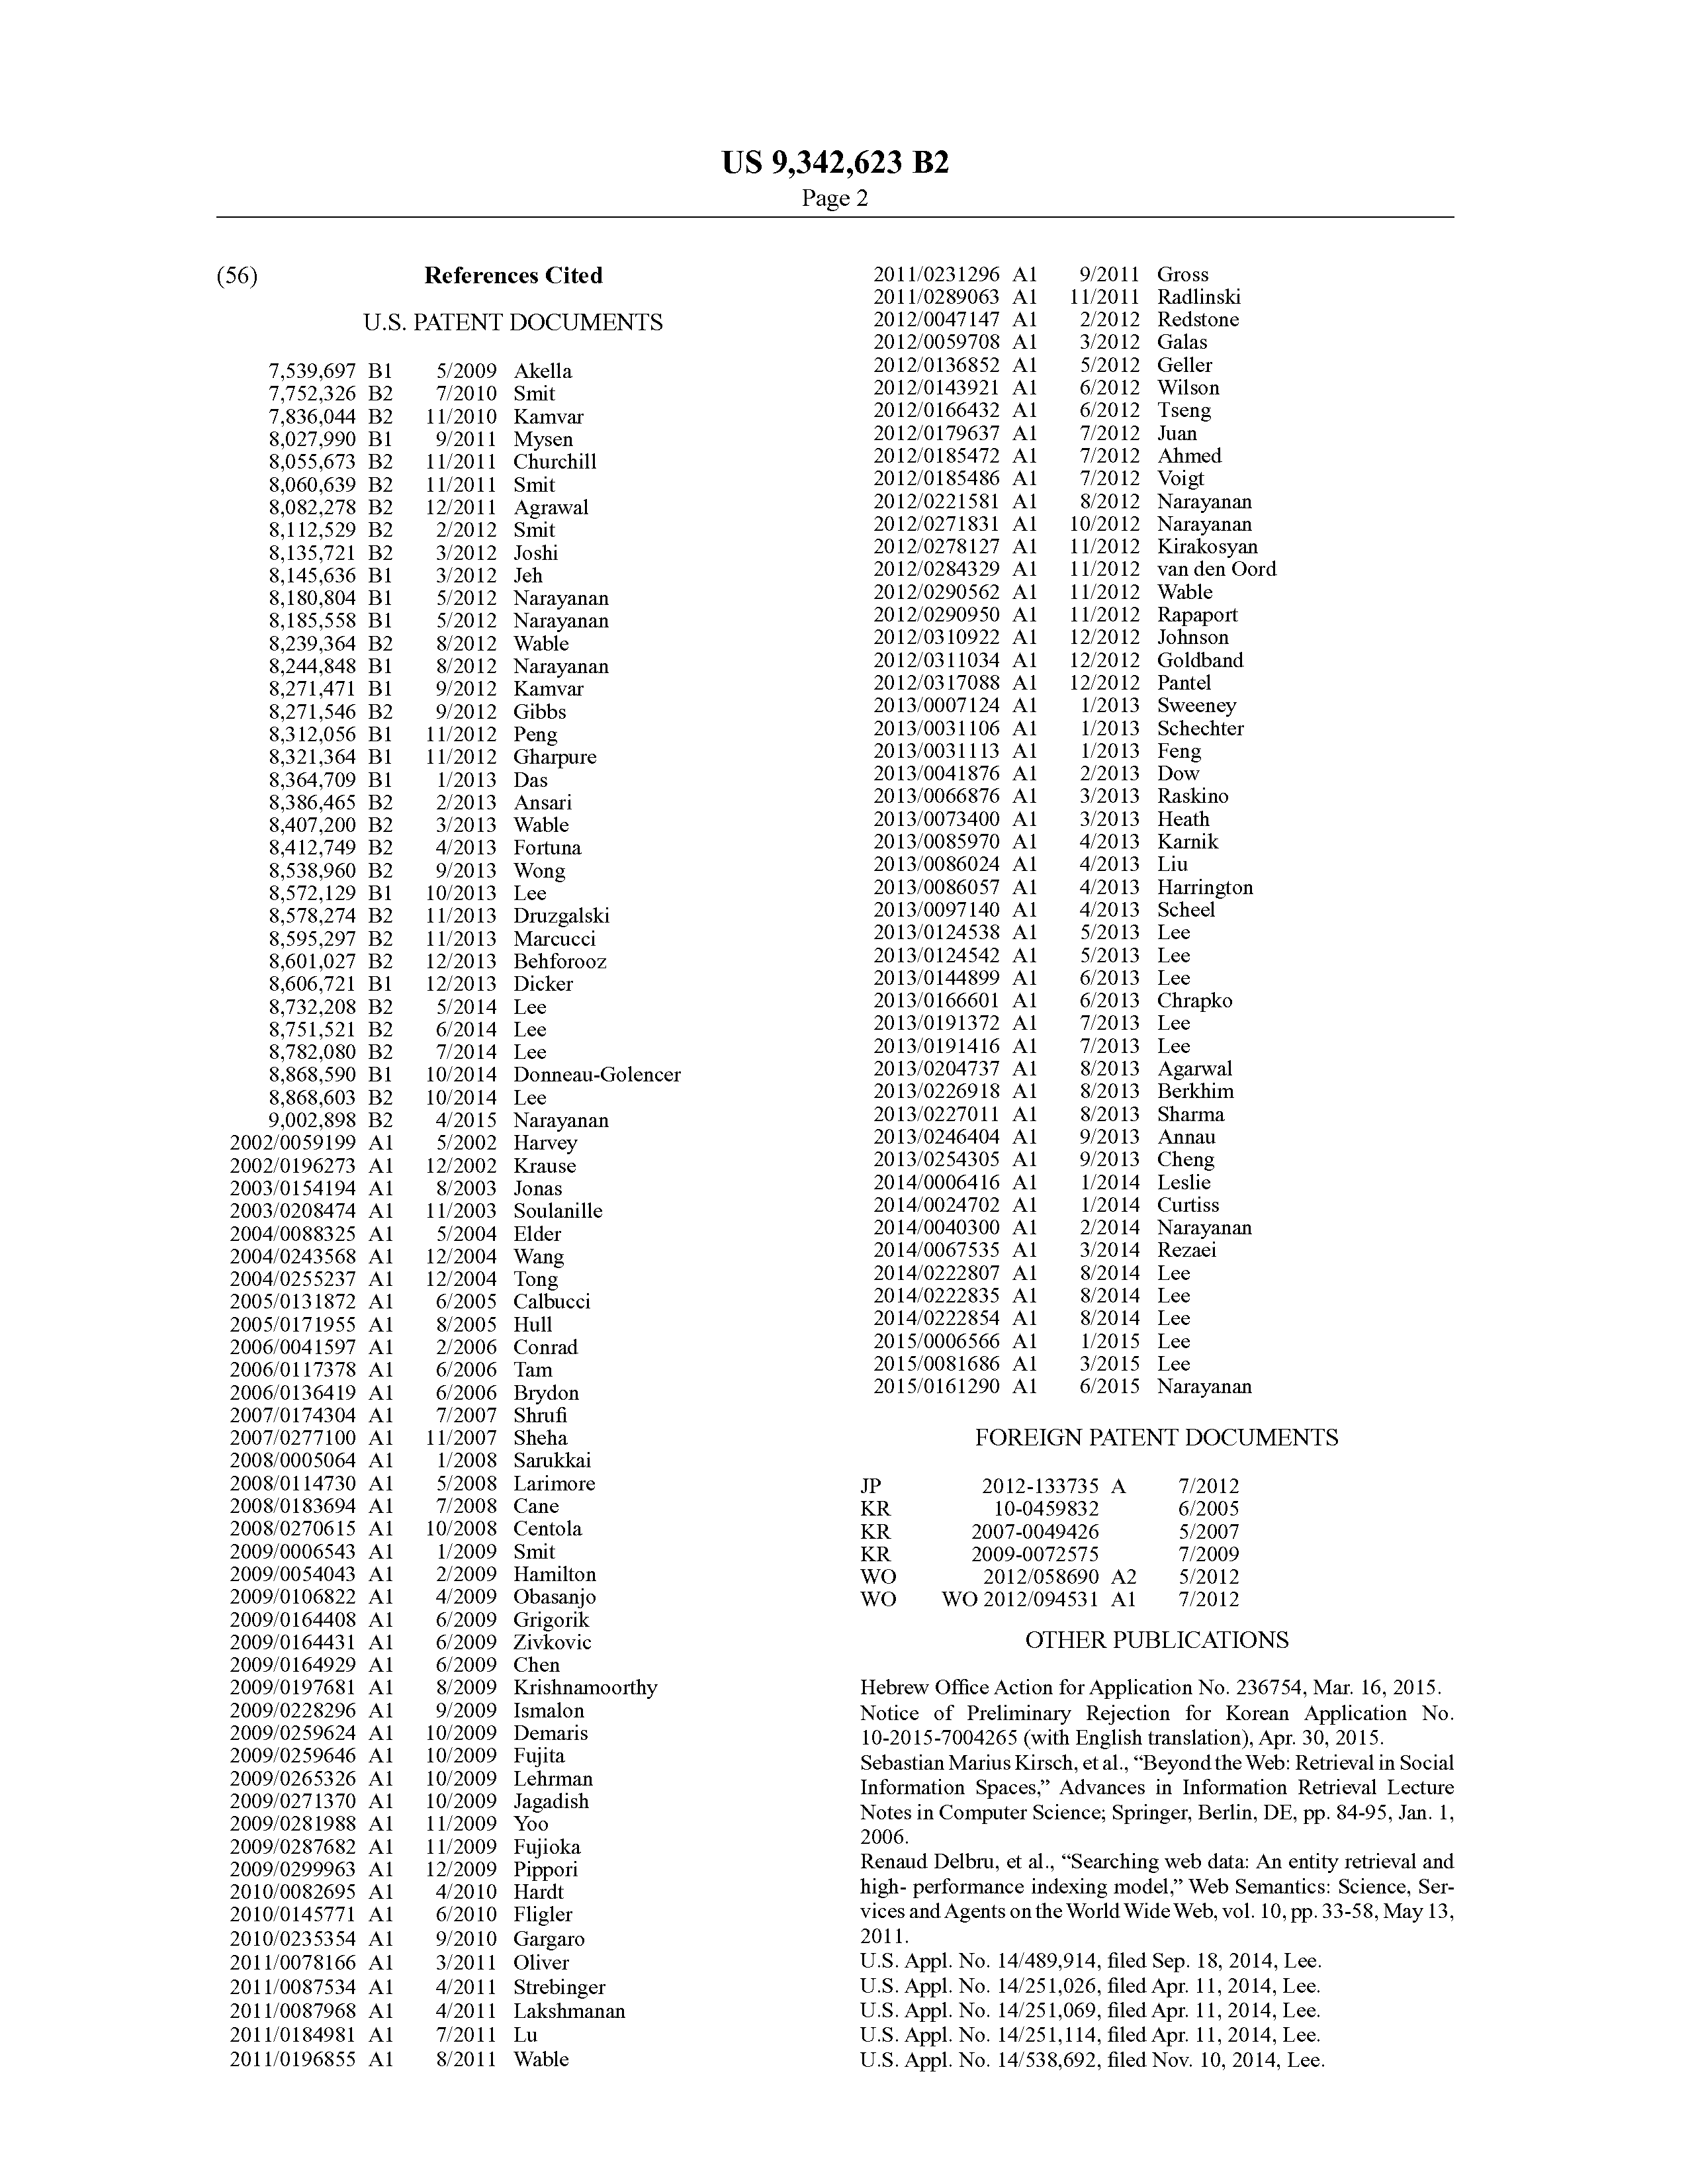 US 9342623 B2 - Automatically Generating Nodes And Edges In An